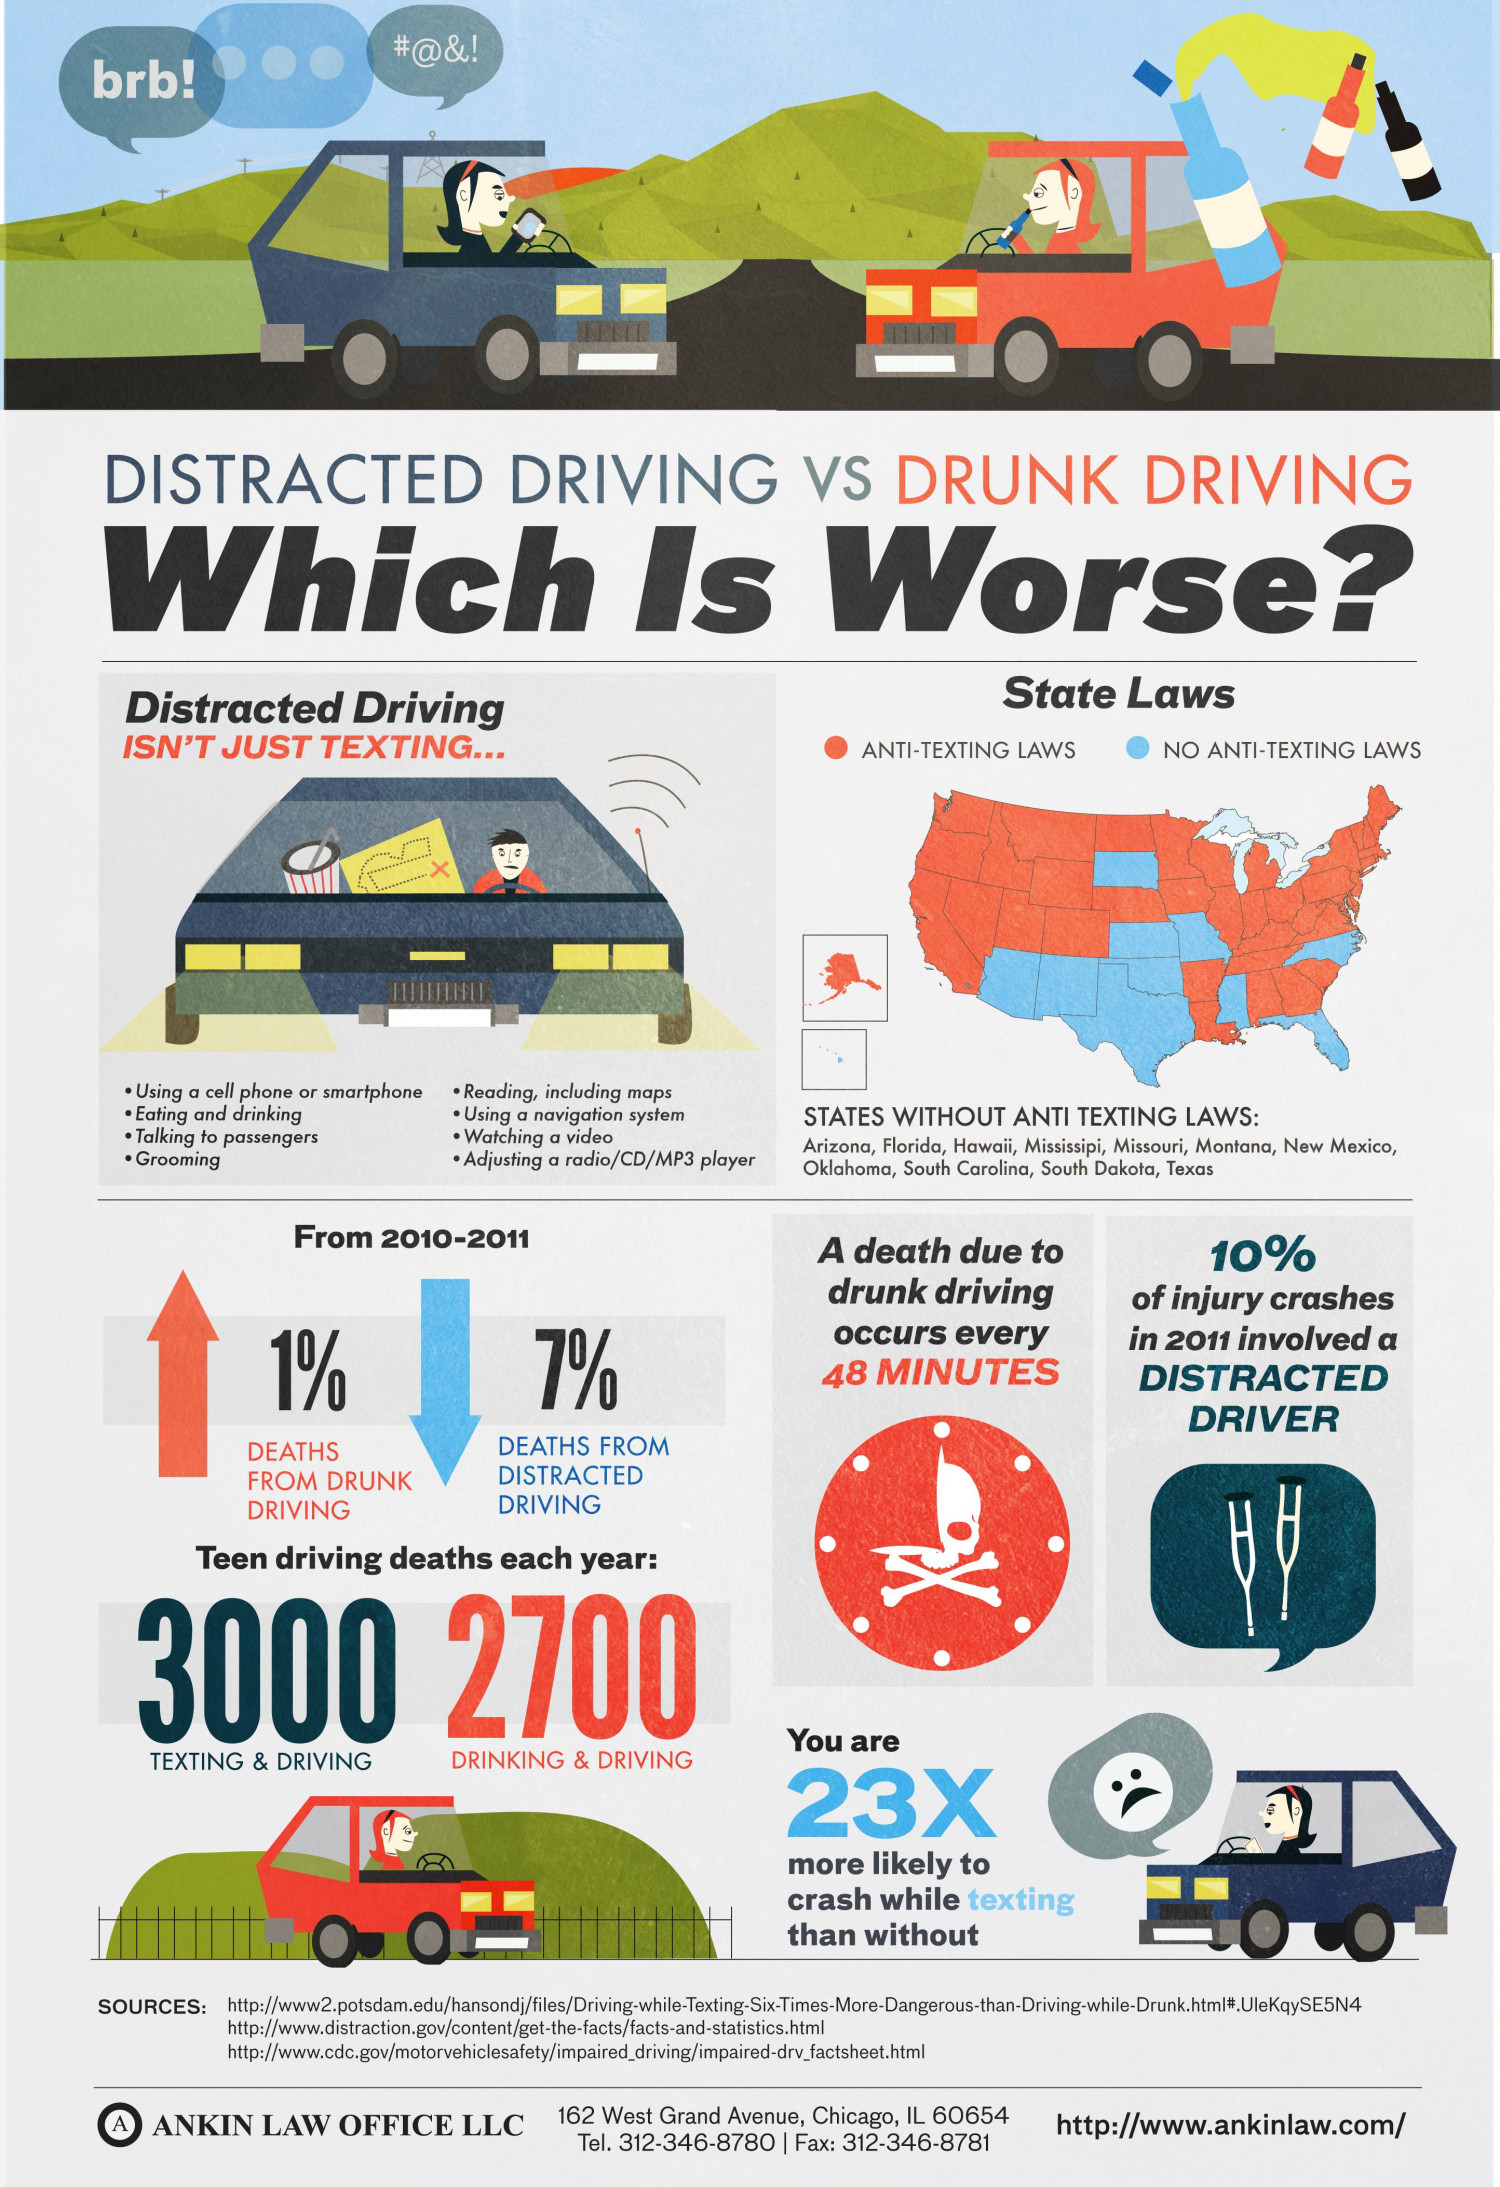 the link between car accidents and cell phone distraction In a finding that demonstrates how crucial it is to pay attention when behind the wheel, researchers report that video taken inside cars showed drivers were distracted seconds before an accident in more than two-thirds of crashes not surprisingly, the findings link cellphone use to many crashes but the investigators said they also discovered something new: the risk of crashes rose significantly when drivers were emotional -- angry, sad, tearful or agitated.